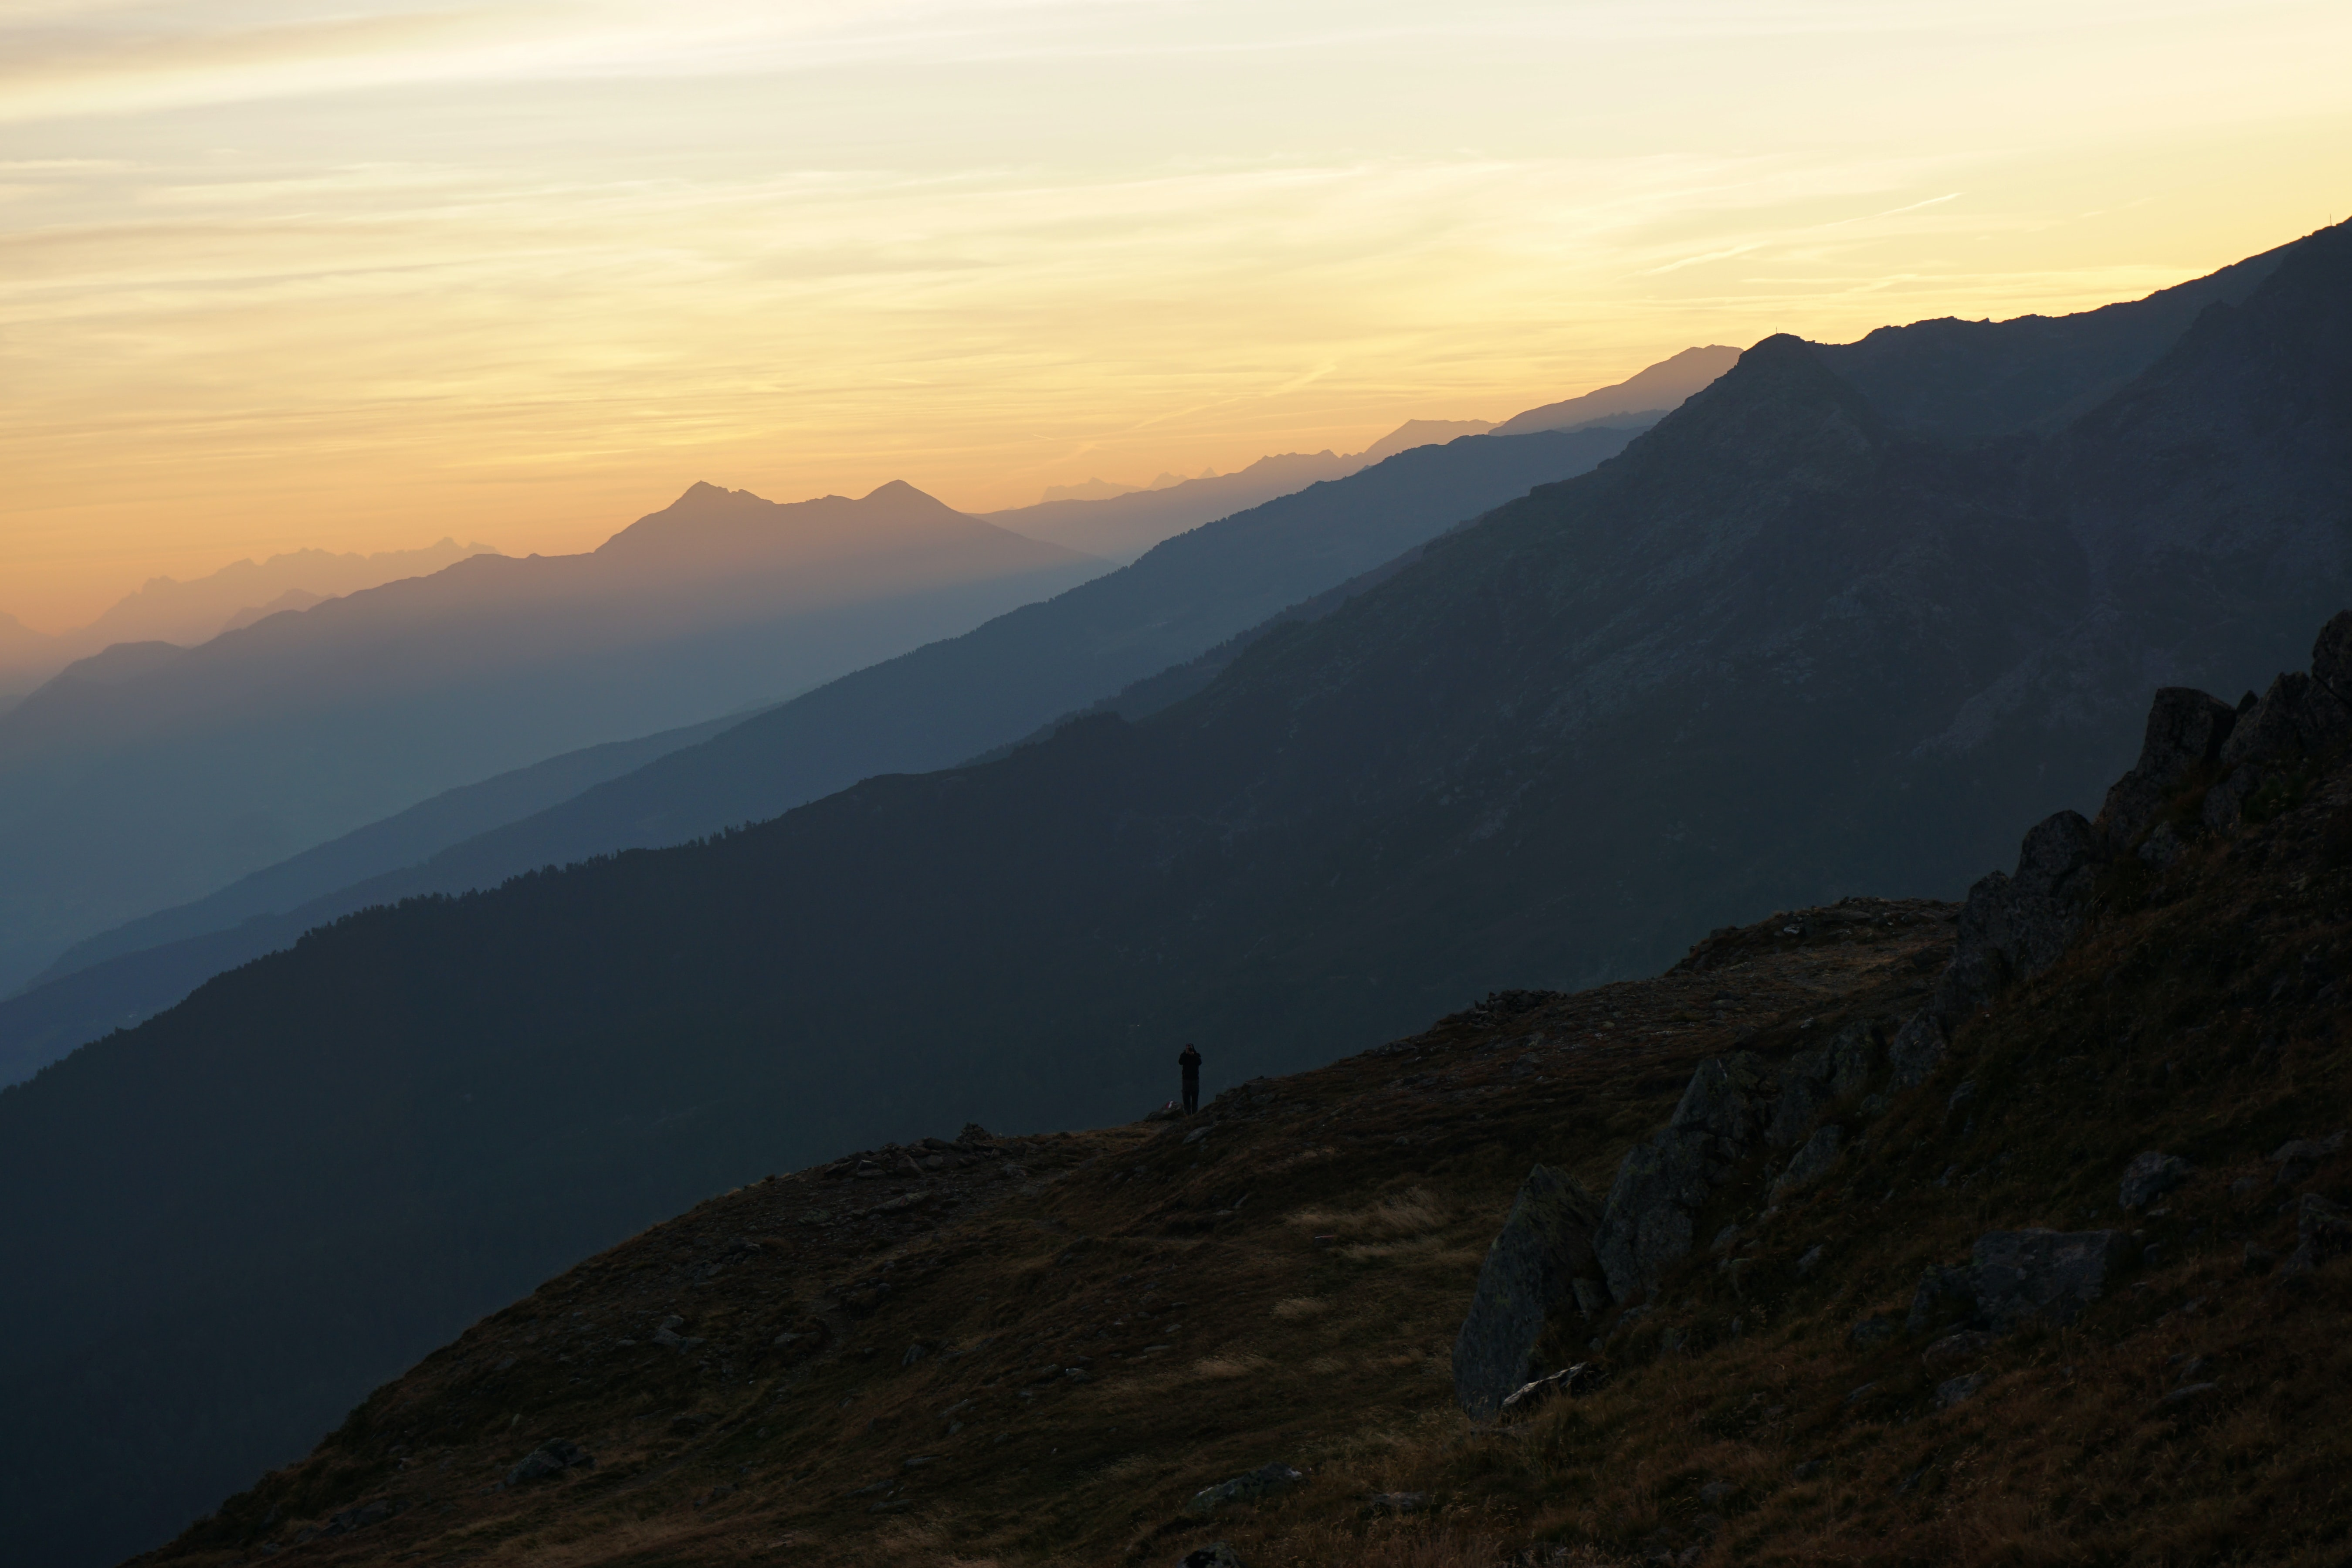 Sunrise or sunset over a rocky mountainous ridge, Innsbruck, Austria